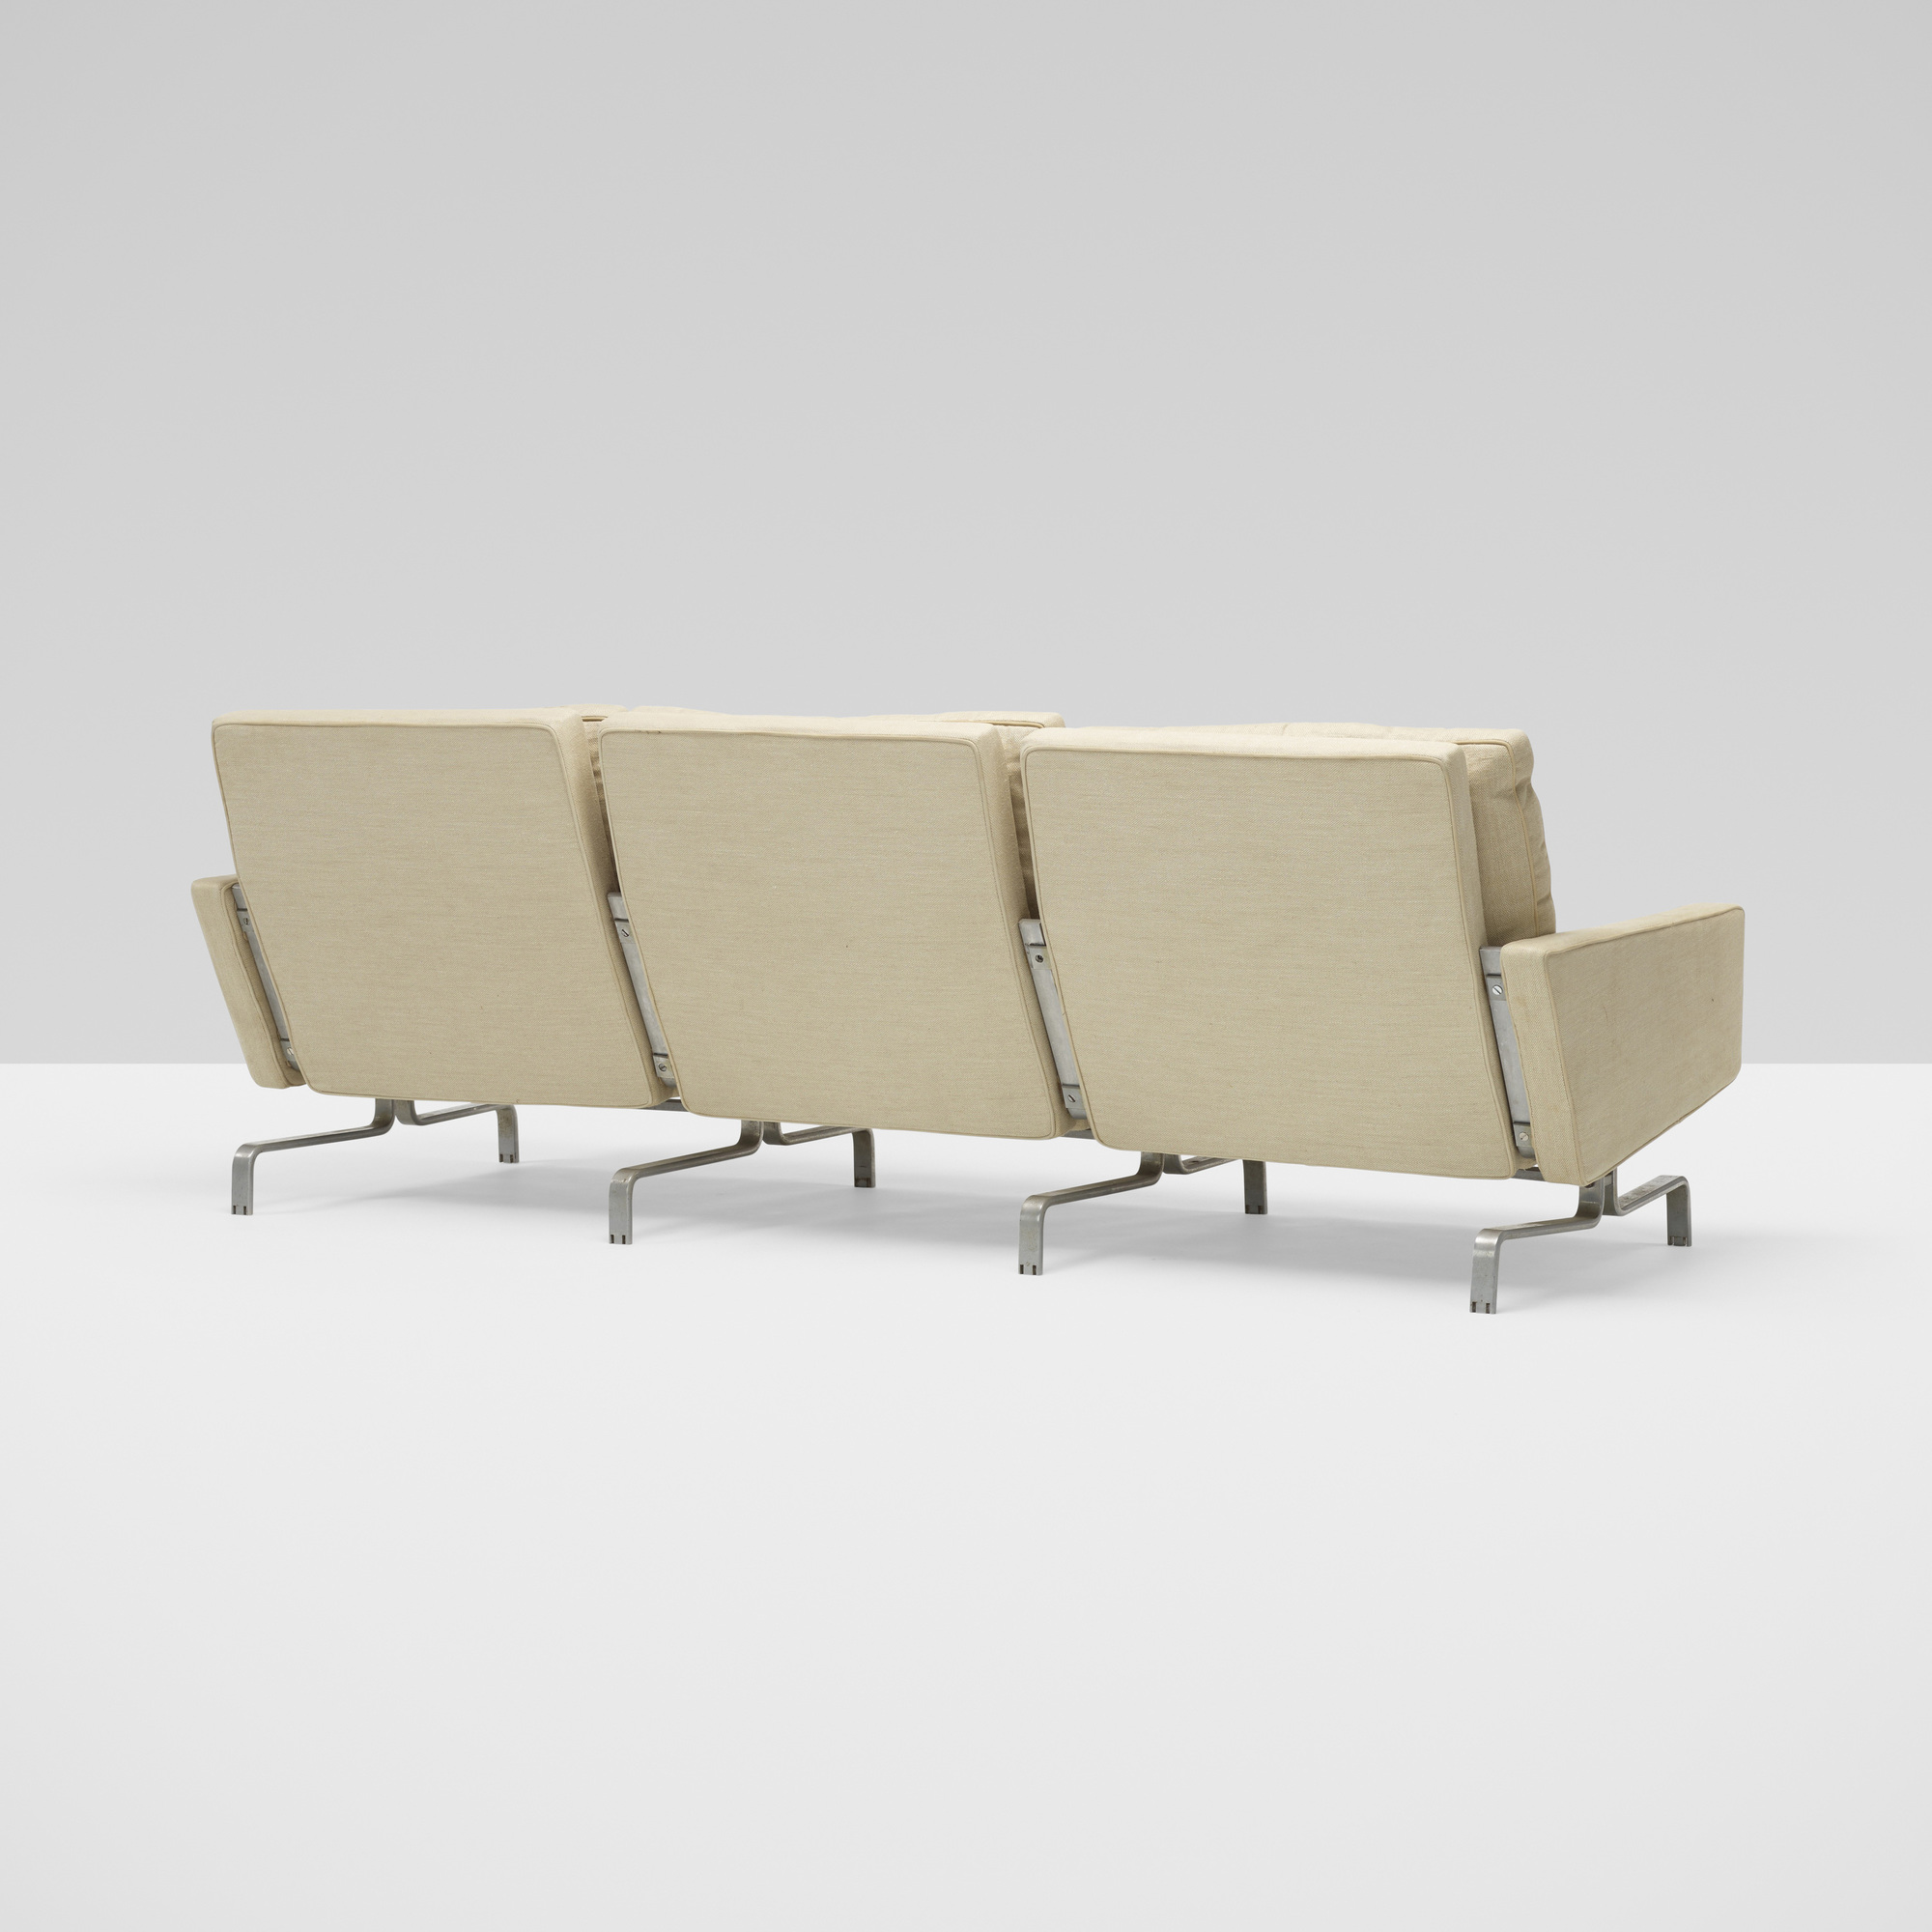 368: Poul Kjaerholm / PK 31/3 sofa (2 of 4)